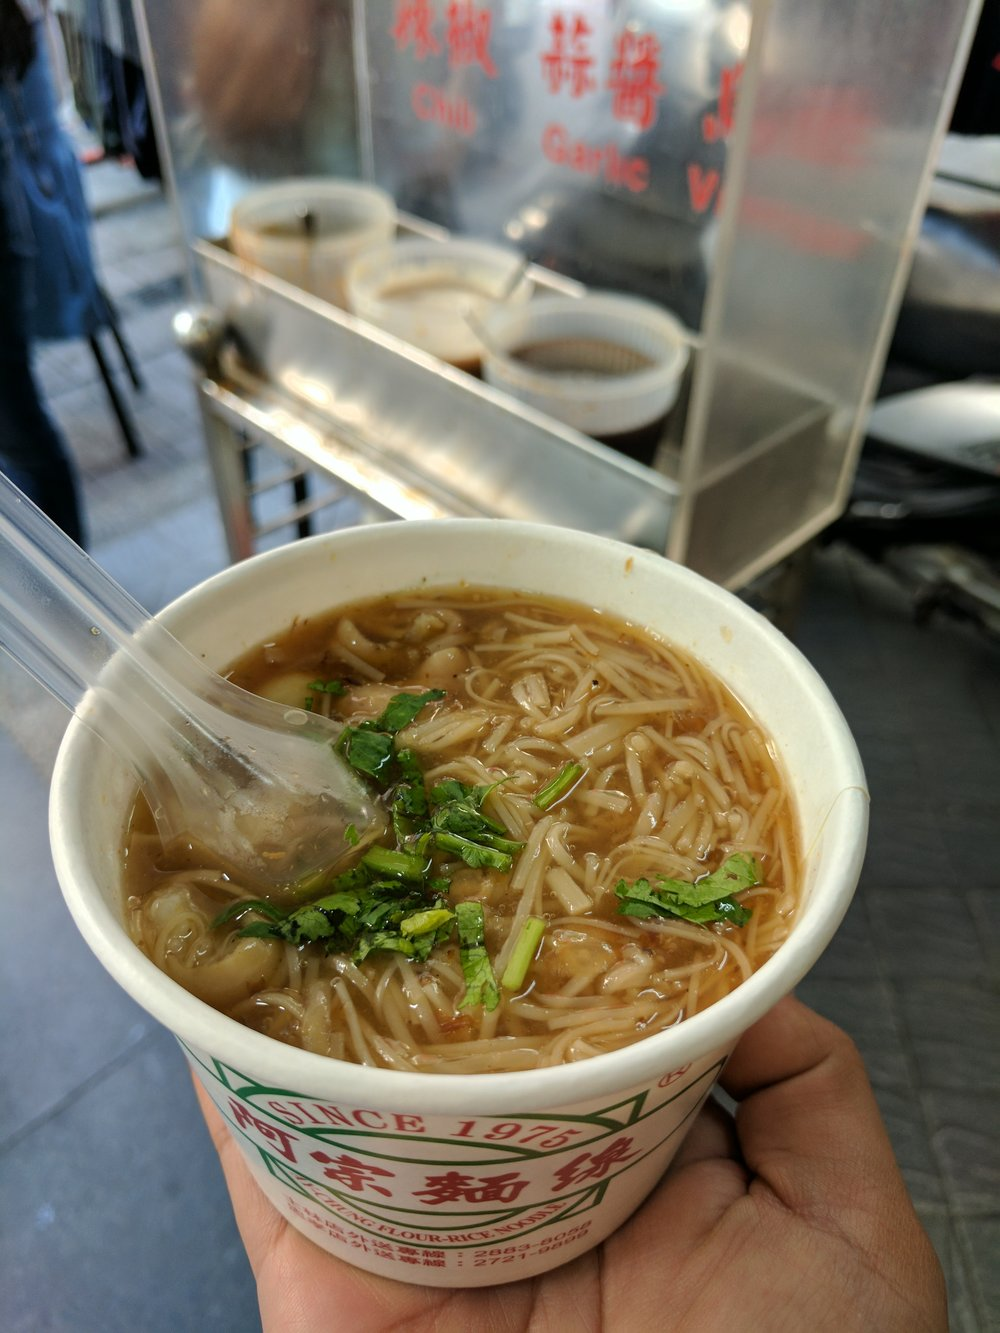 THEN WHY DON'T YOU MARRY PIG LARGE INTESTINE VERMICELLI SOUP (AN ICE CREAM SANDWICH)?!